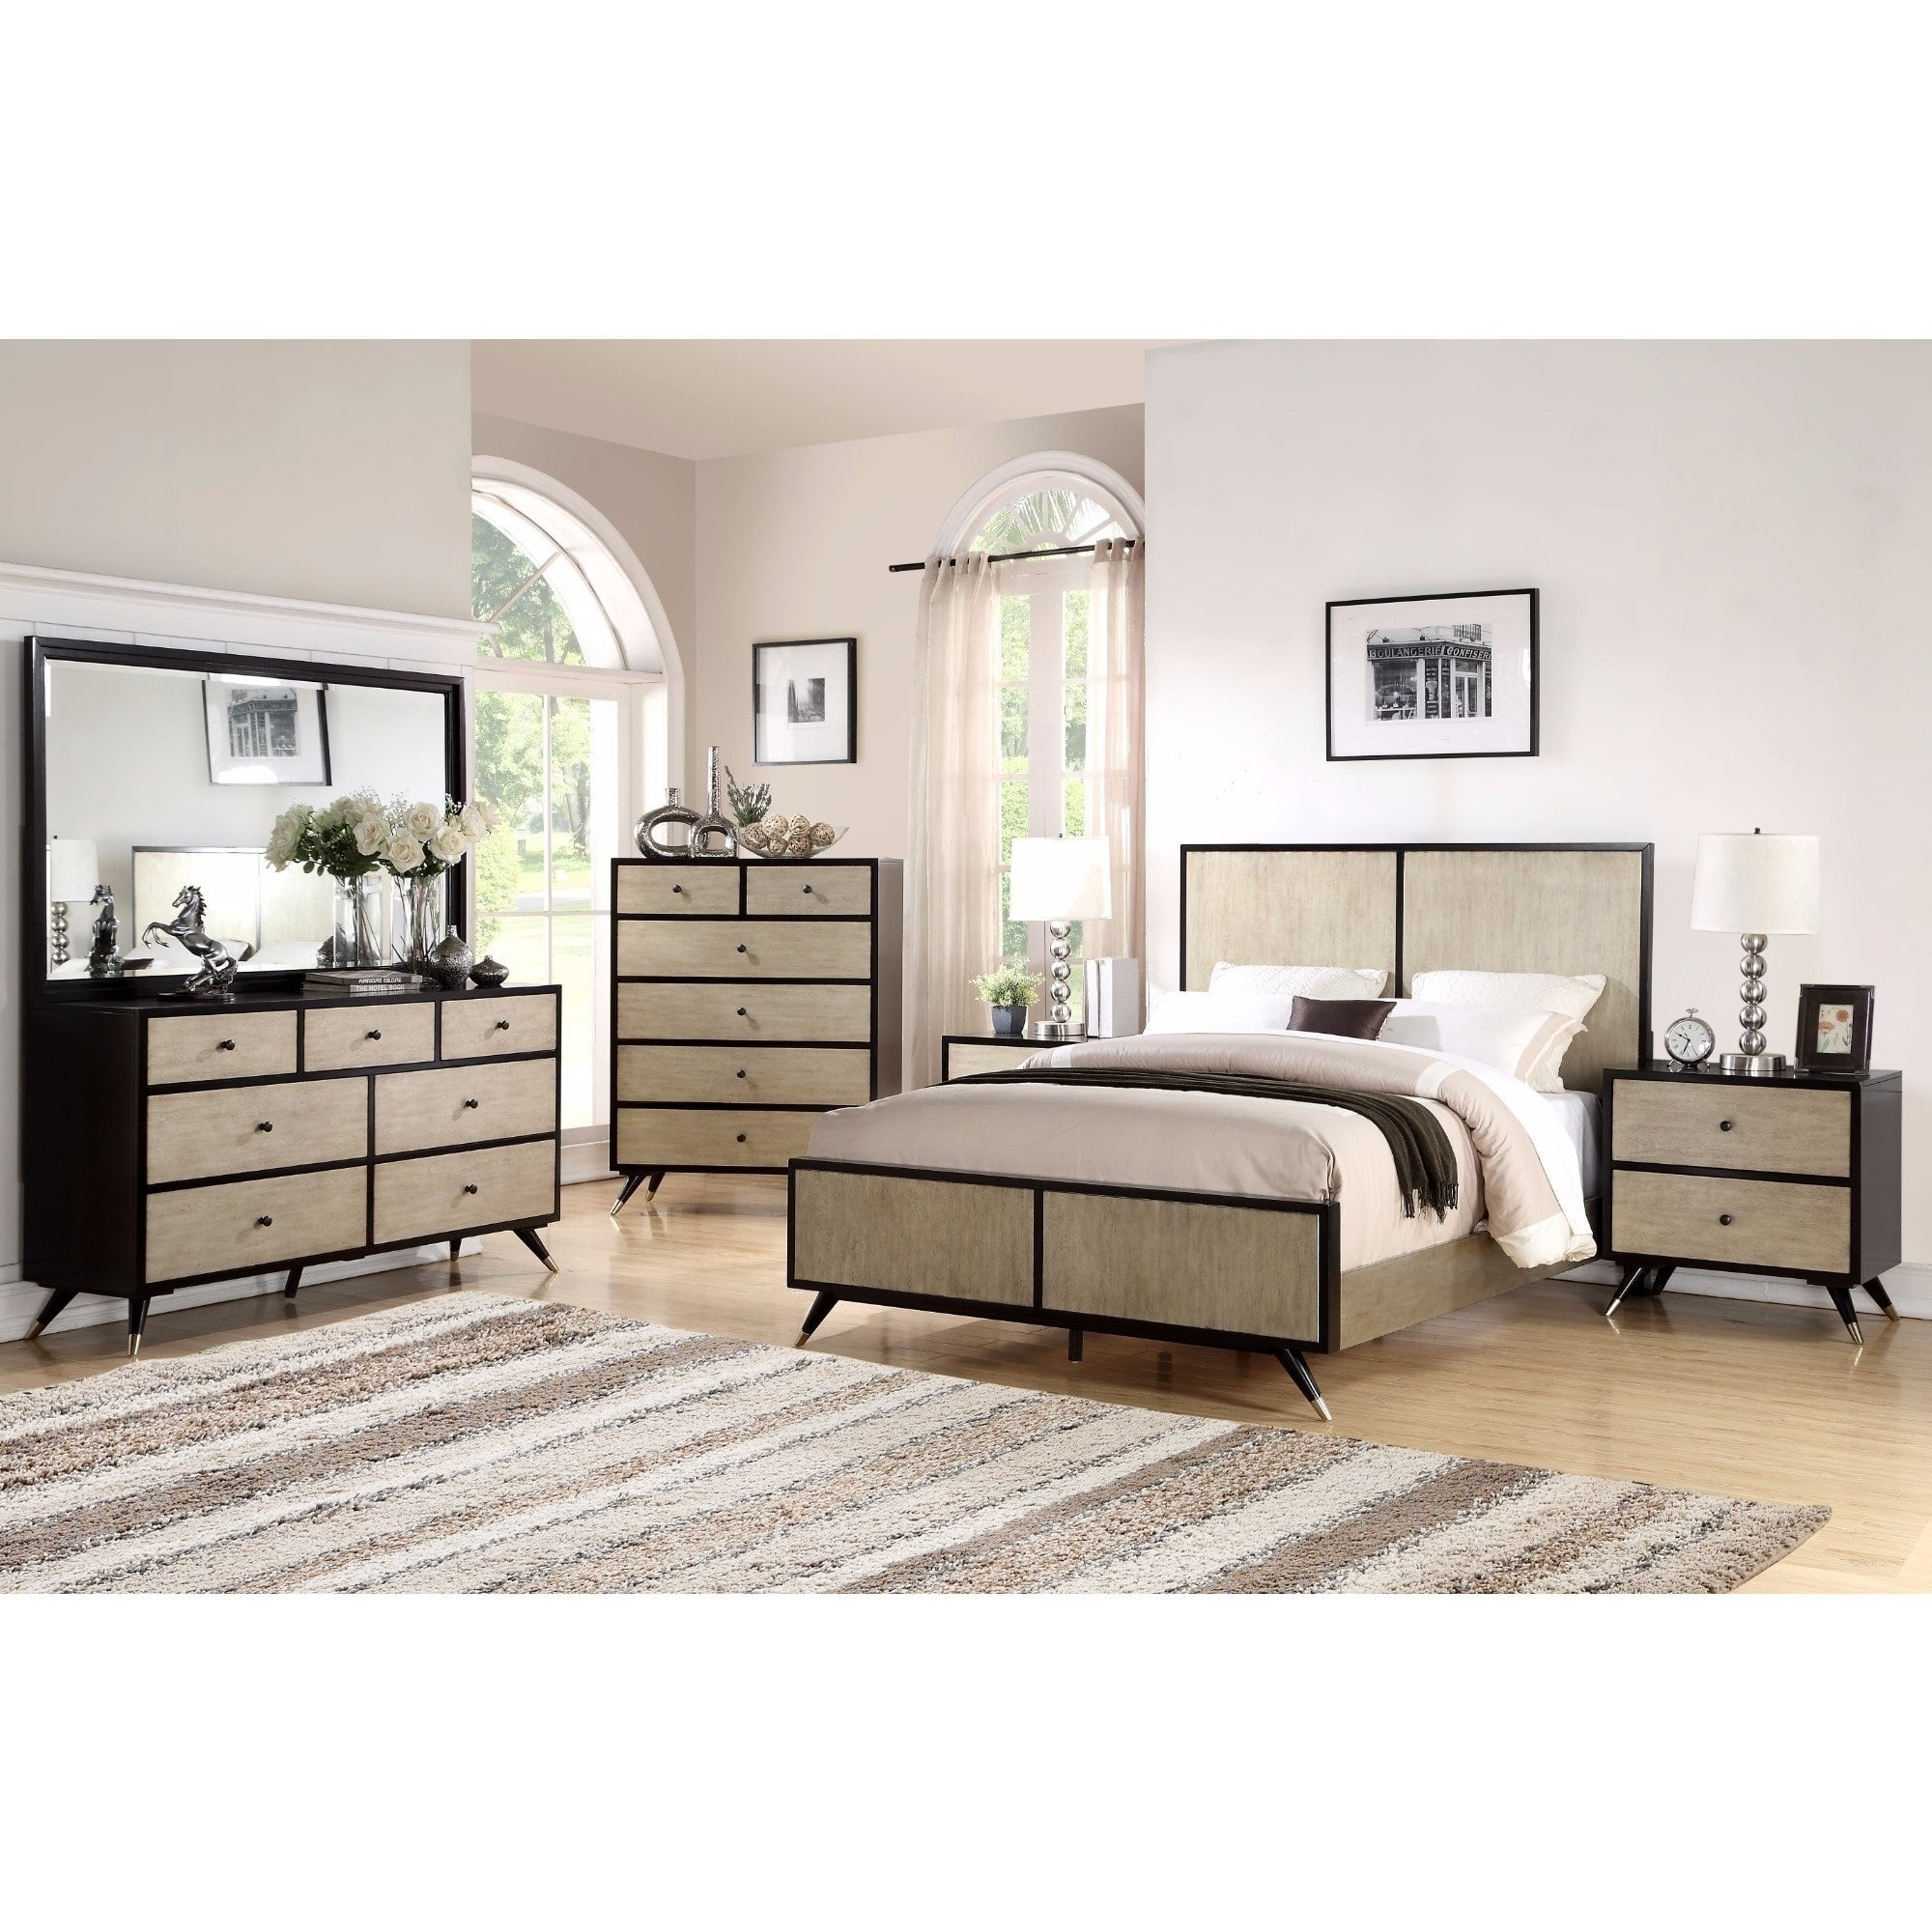 Abbyson Lennon Mid Century 6 Piece Bedroom Set - Free Shipping Today -  Overstock.com - 23061941 Interior Bedroom Ideas ookie1.com